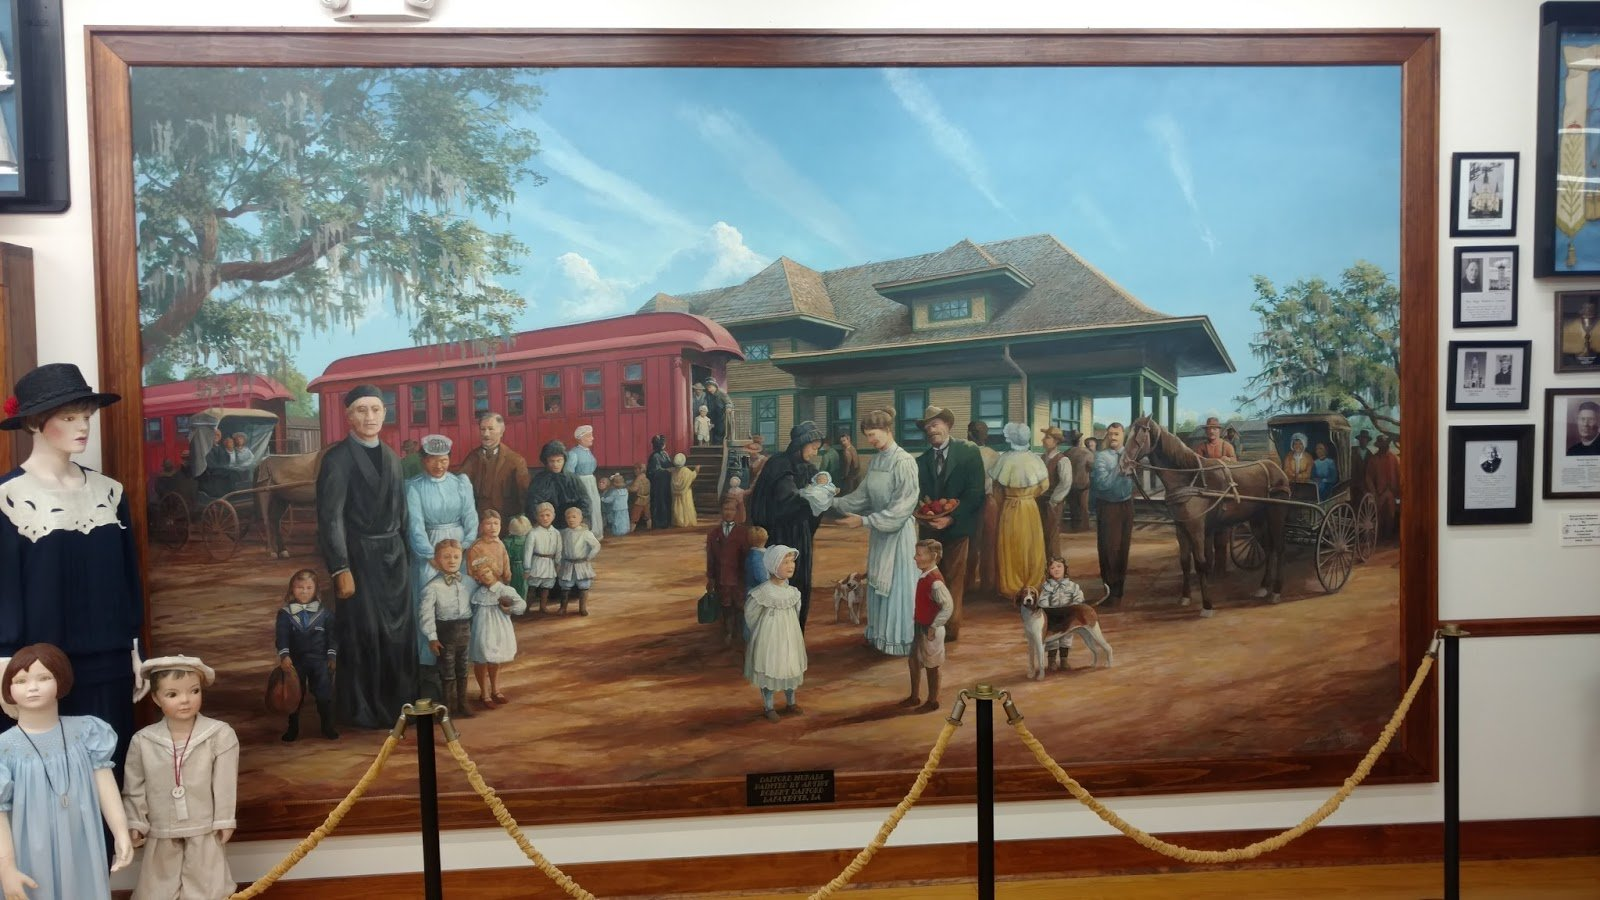 A picture located inside the Orphan Train Museum.